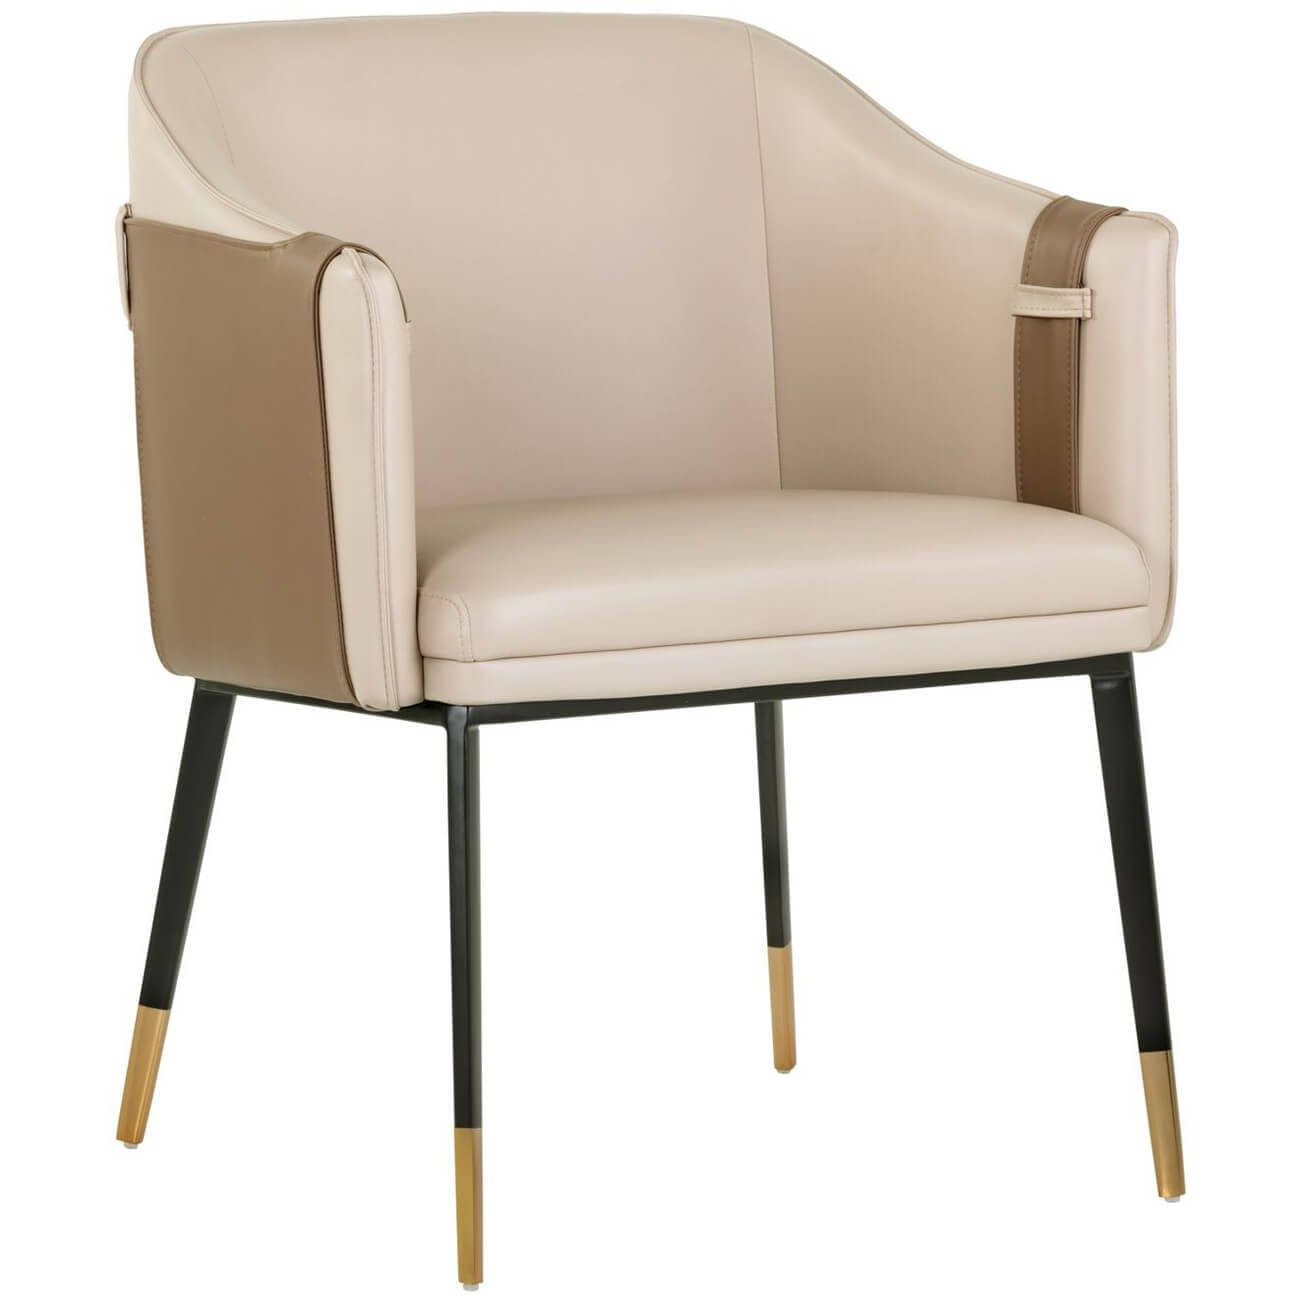 Pleasing Carter Chair Napa Tan High Fashion Home Gamerscity Chair Design For Home Gamerscityorg